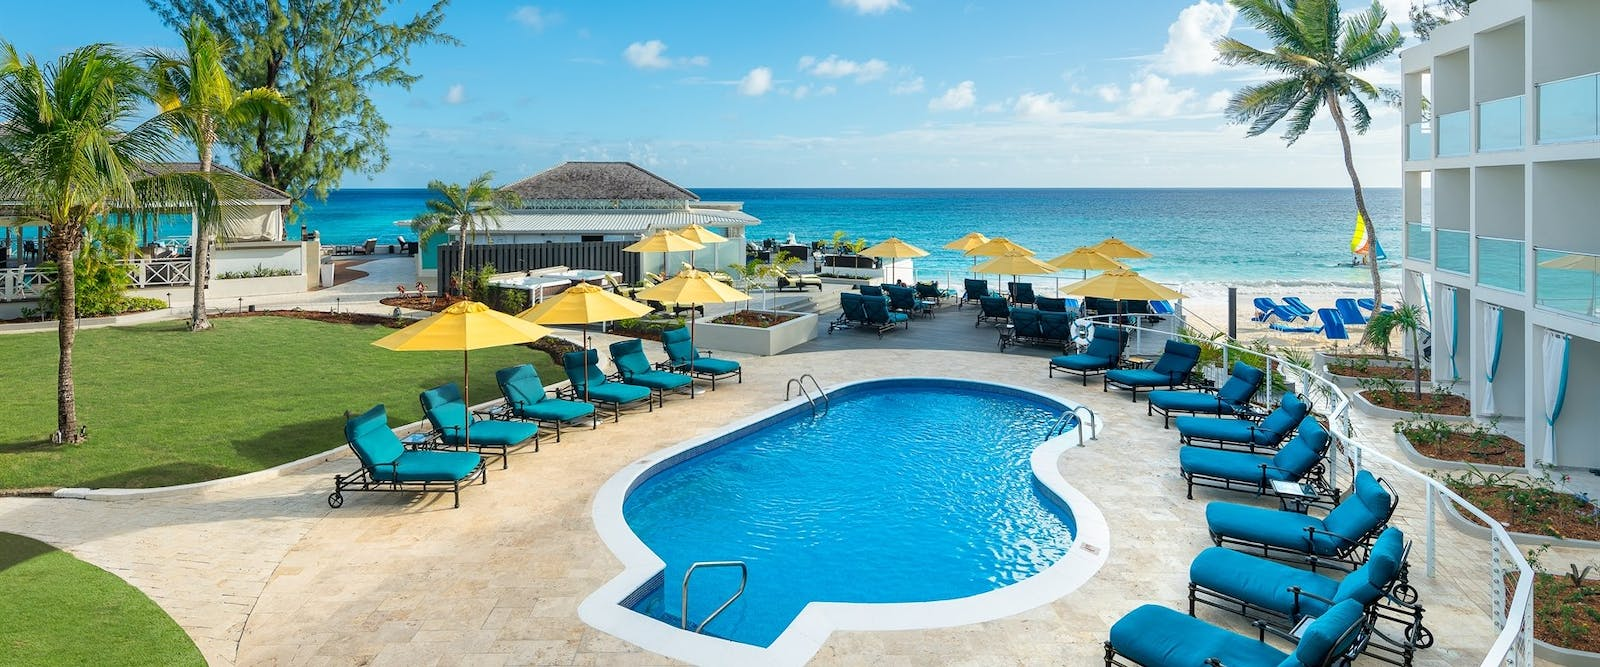 1 12 Only Pool At Sea Breeze Beach House Barbados